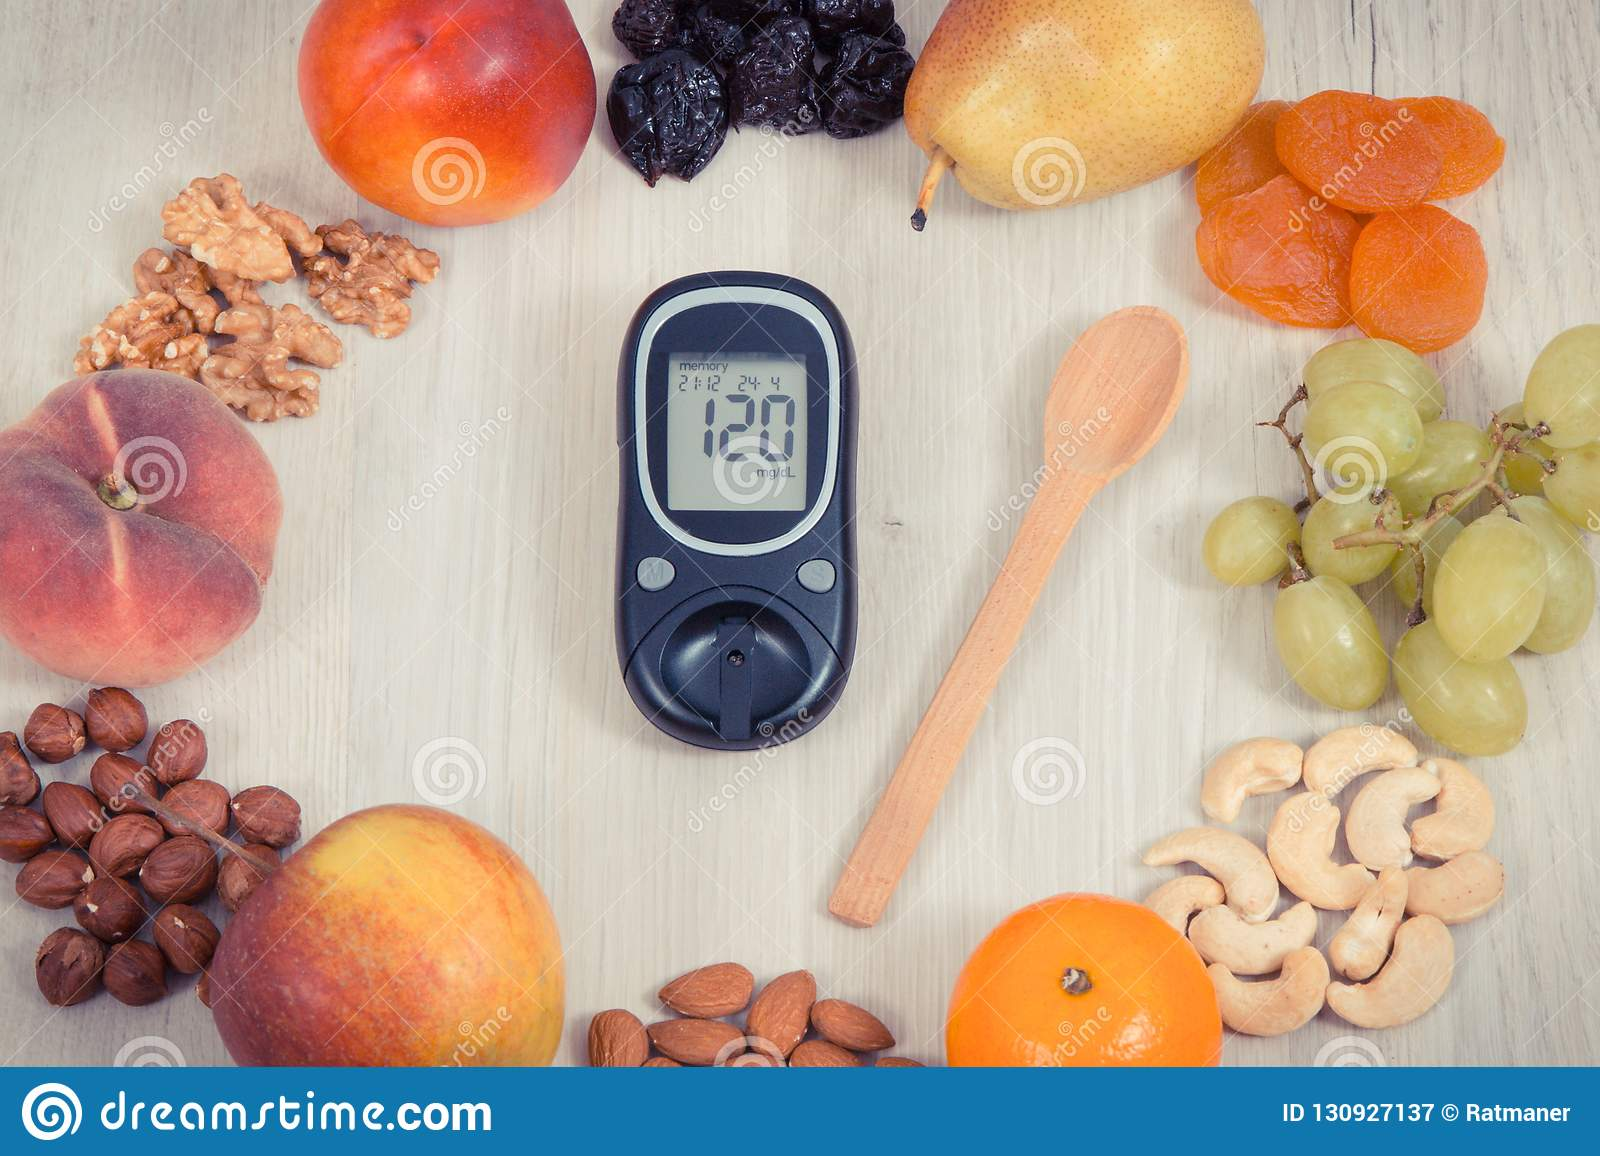 Diabetes Nutrition Glucose Meter With Result Of Measurement Sugar Level And Healthy